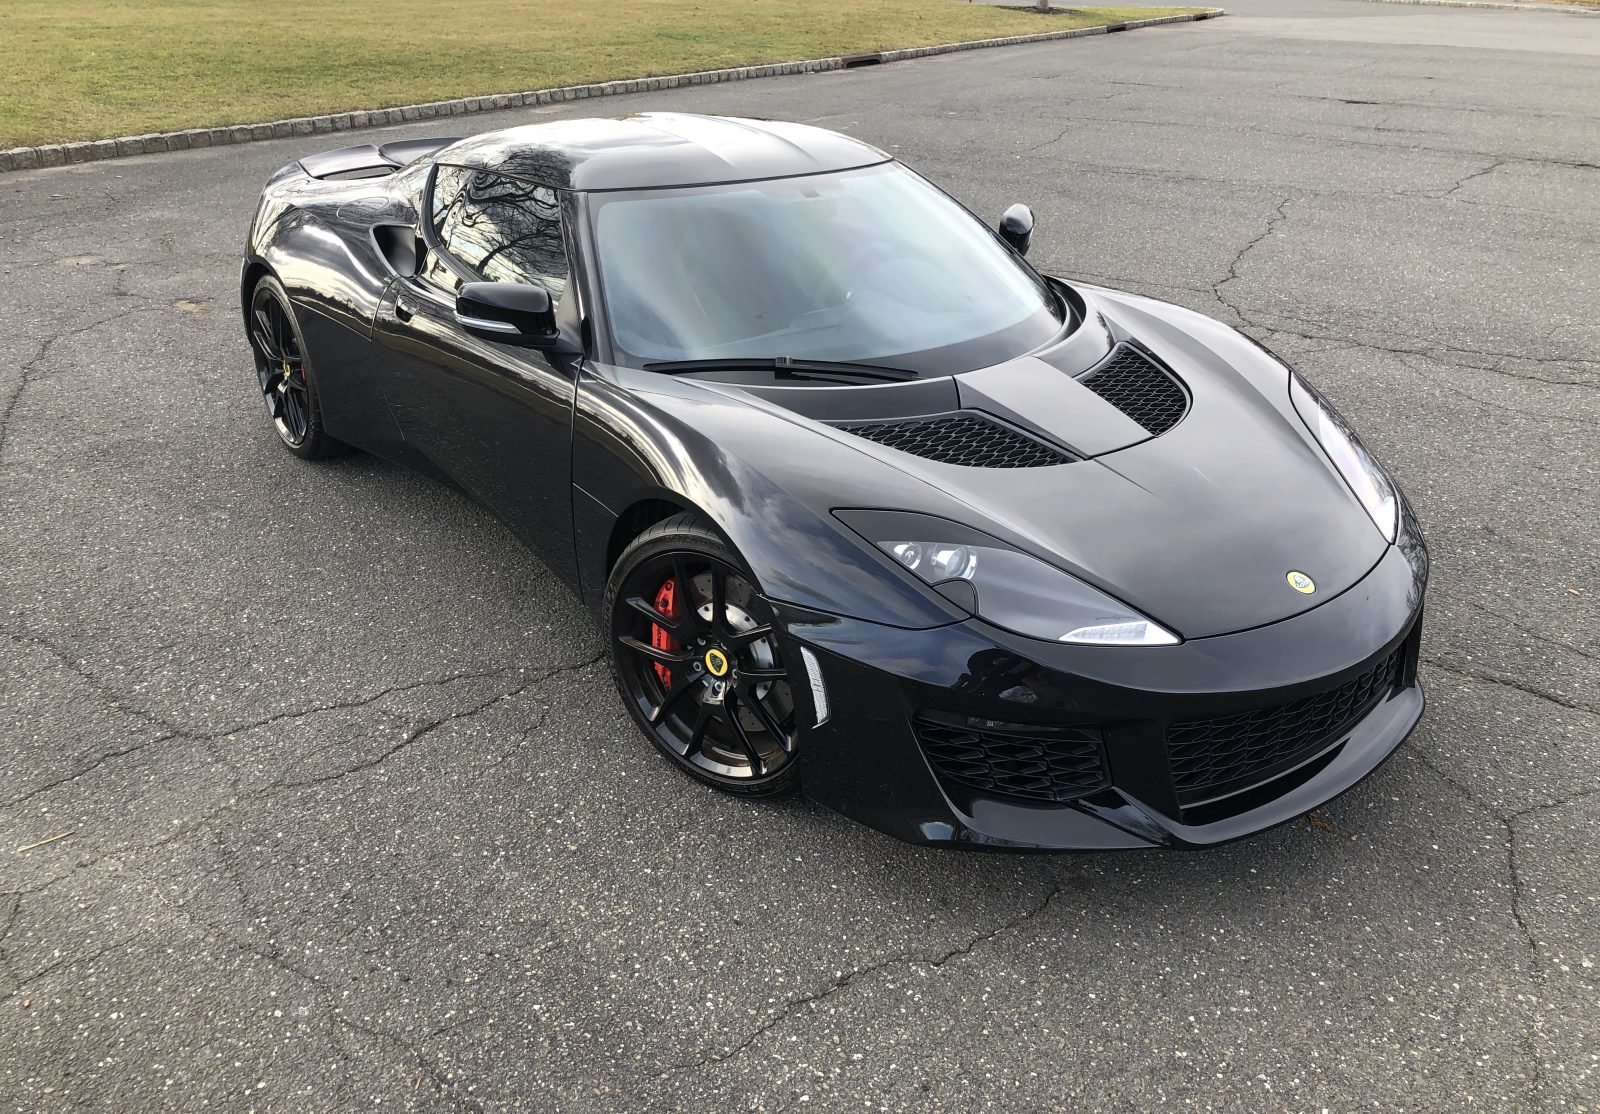 2016 Lotus Evora 400 Rare Black Edition 6 Speed Manual $69.9 For Sale (picture 2 of 6)